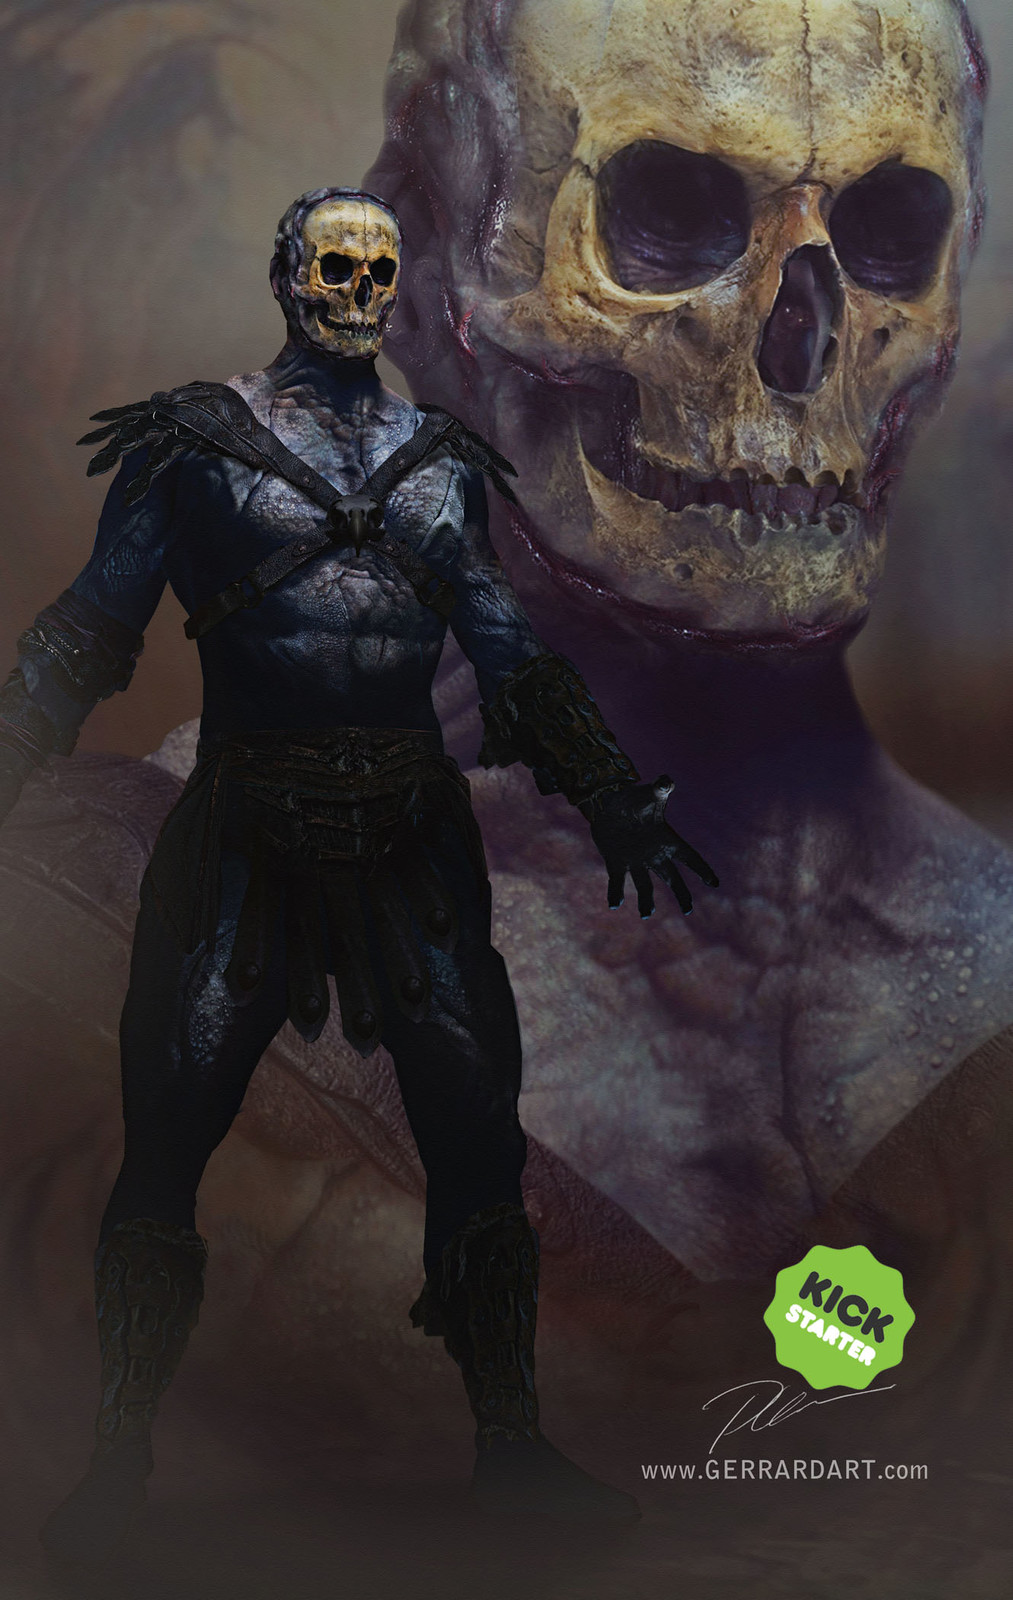 'Classic Skeletor' from NEW BOOK